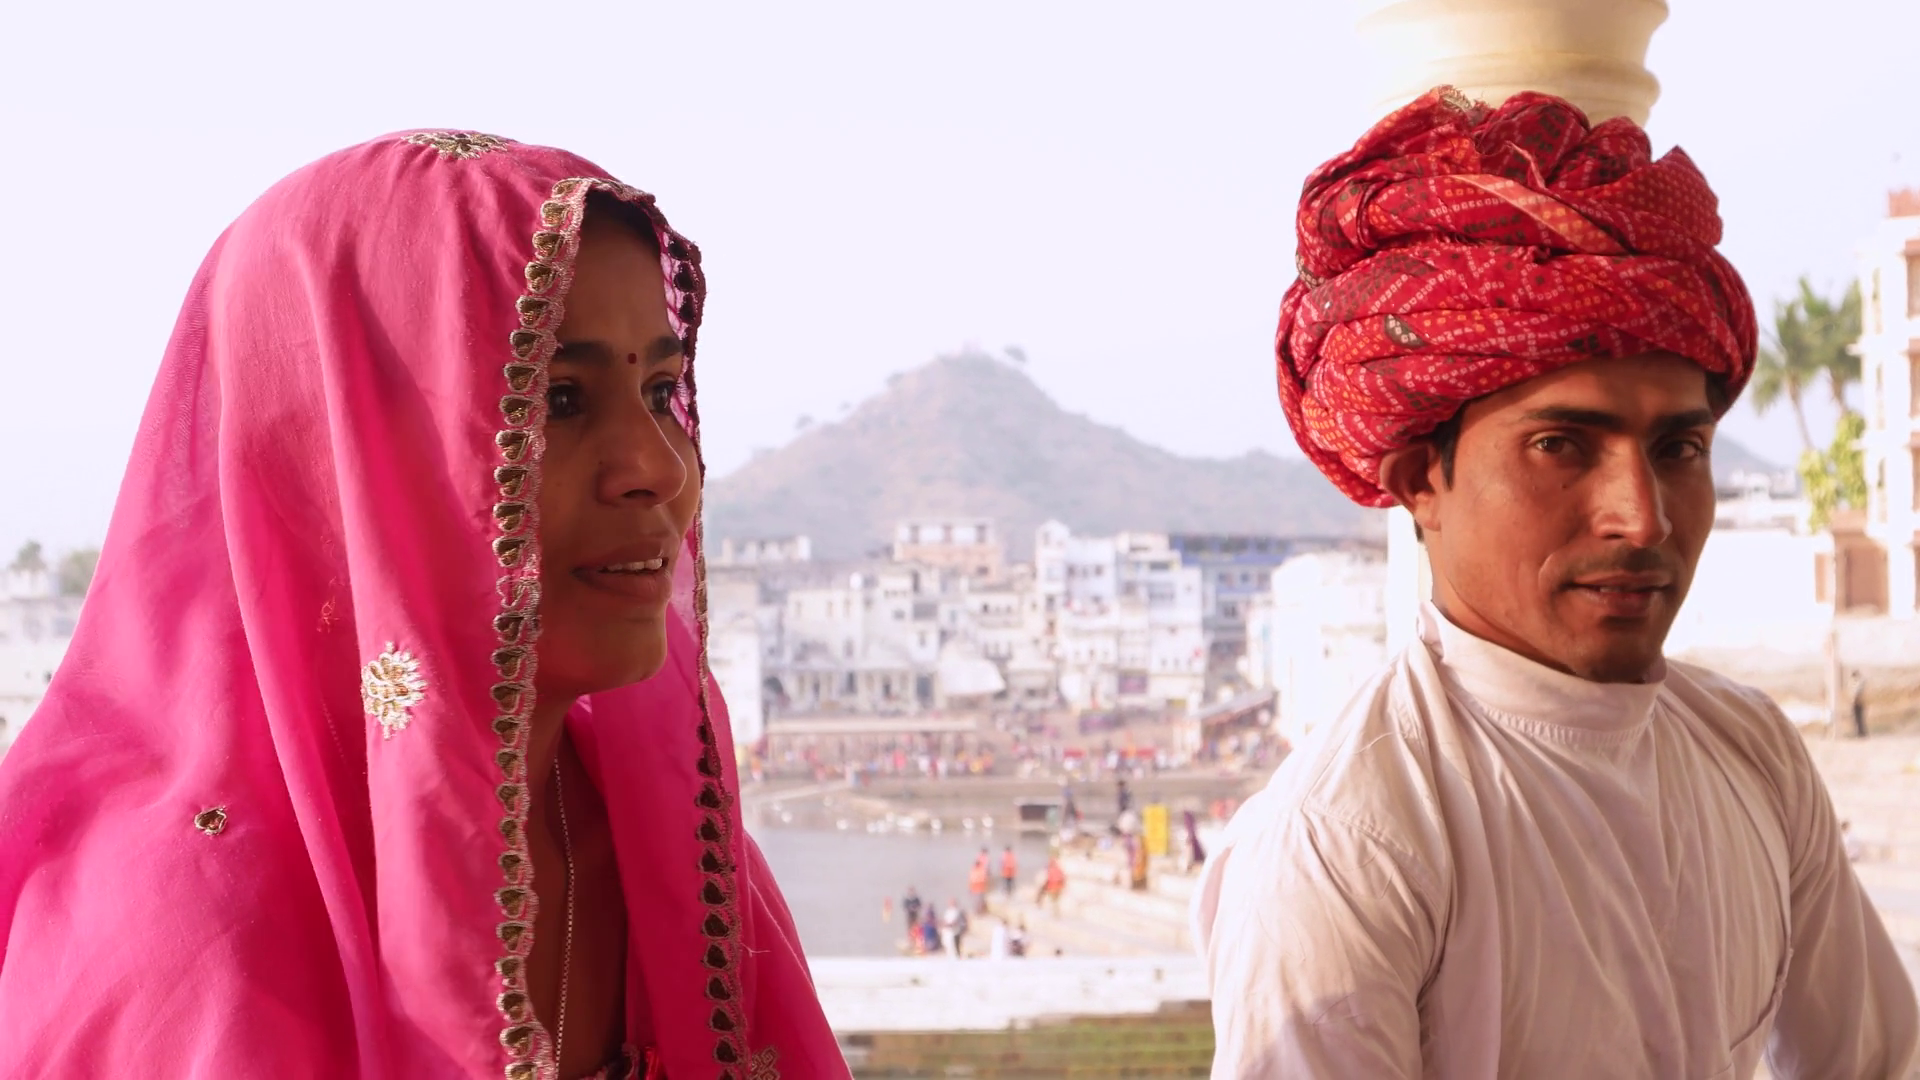 Traditional Dress Of Rajasthan Png - Indian Couple In Traditional Dress Sitting With Pushkar Lake In The Background, Rajasthan, India Stock Video Footage   Videoblocks, Transparent background PNG HD thumbnail